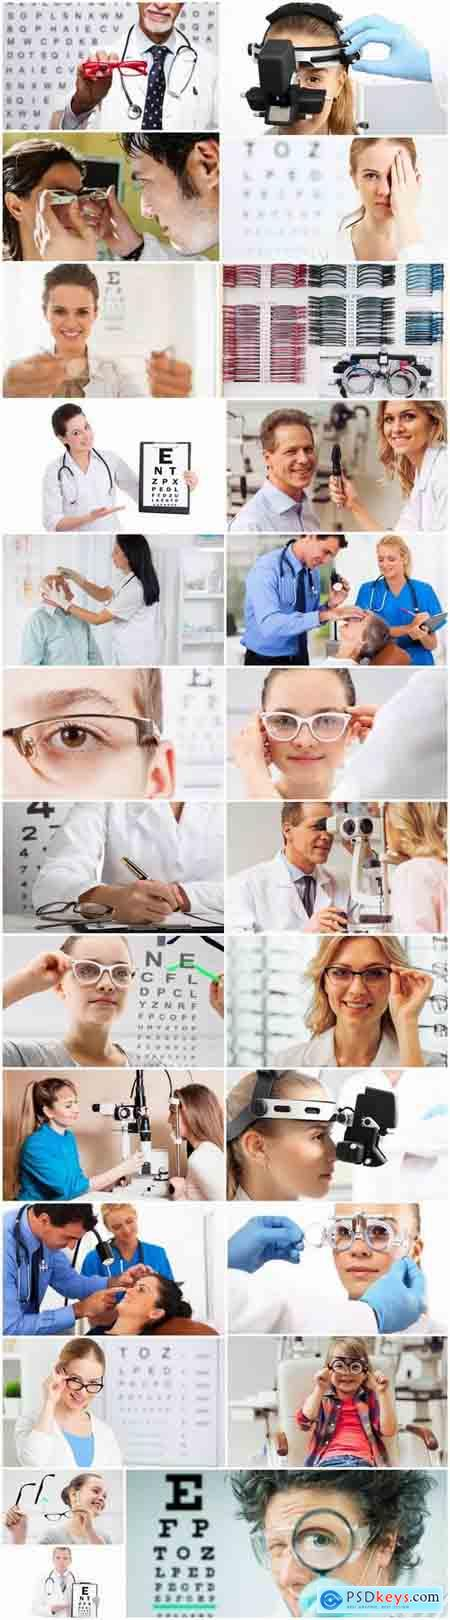 Glasses optometrist poor eyesight eye treatment 25 HQ Jpeg